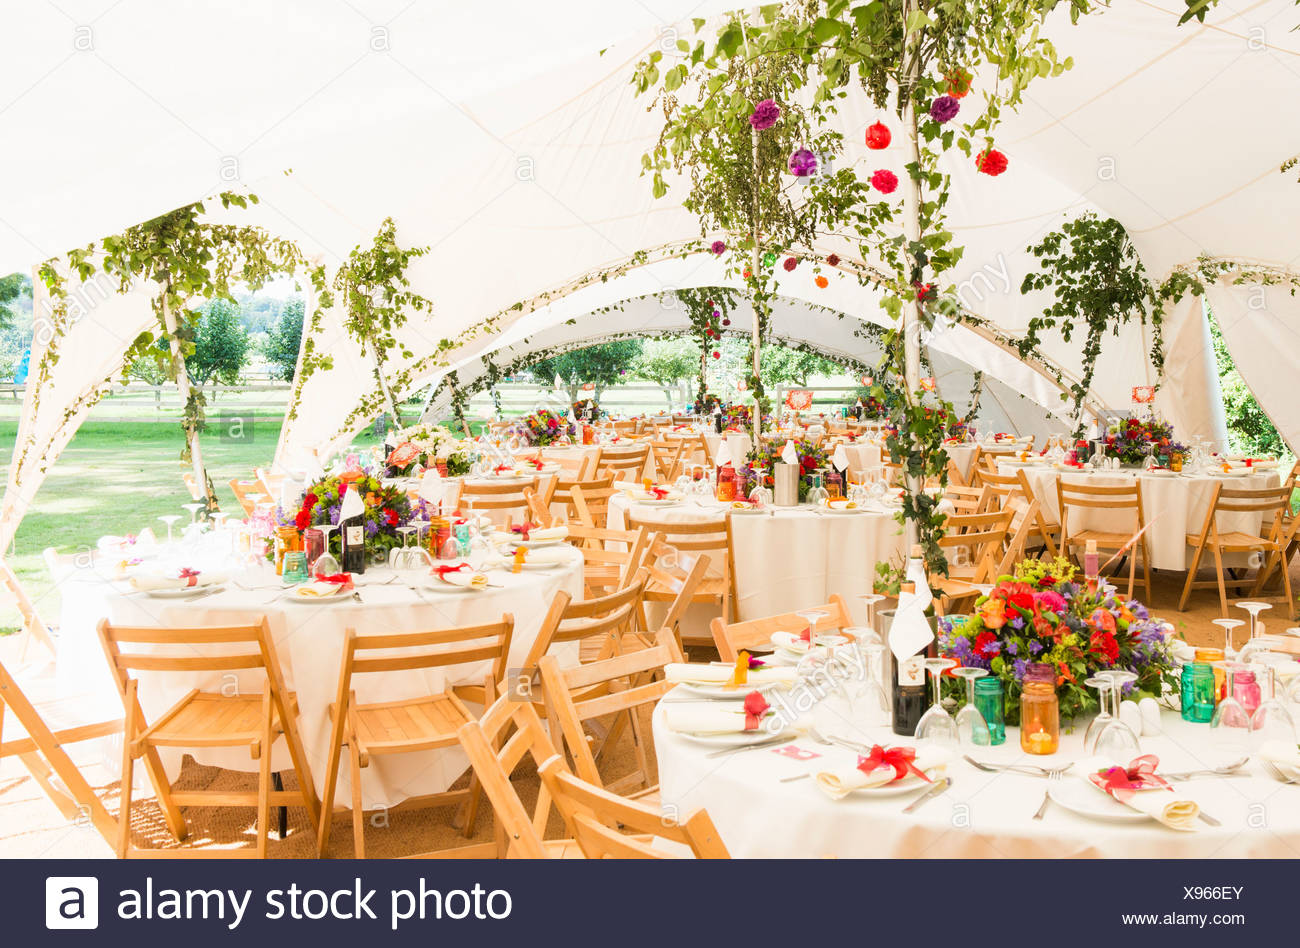 Decorated Tables In Garden Marquee At Wedding Reception Stock Photo